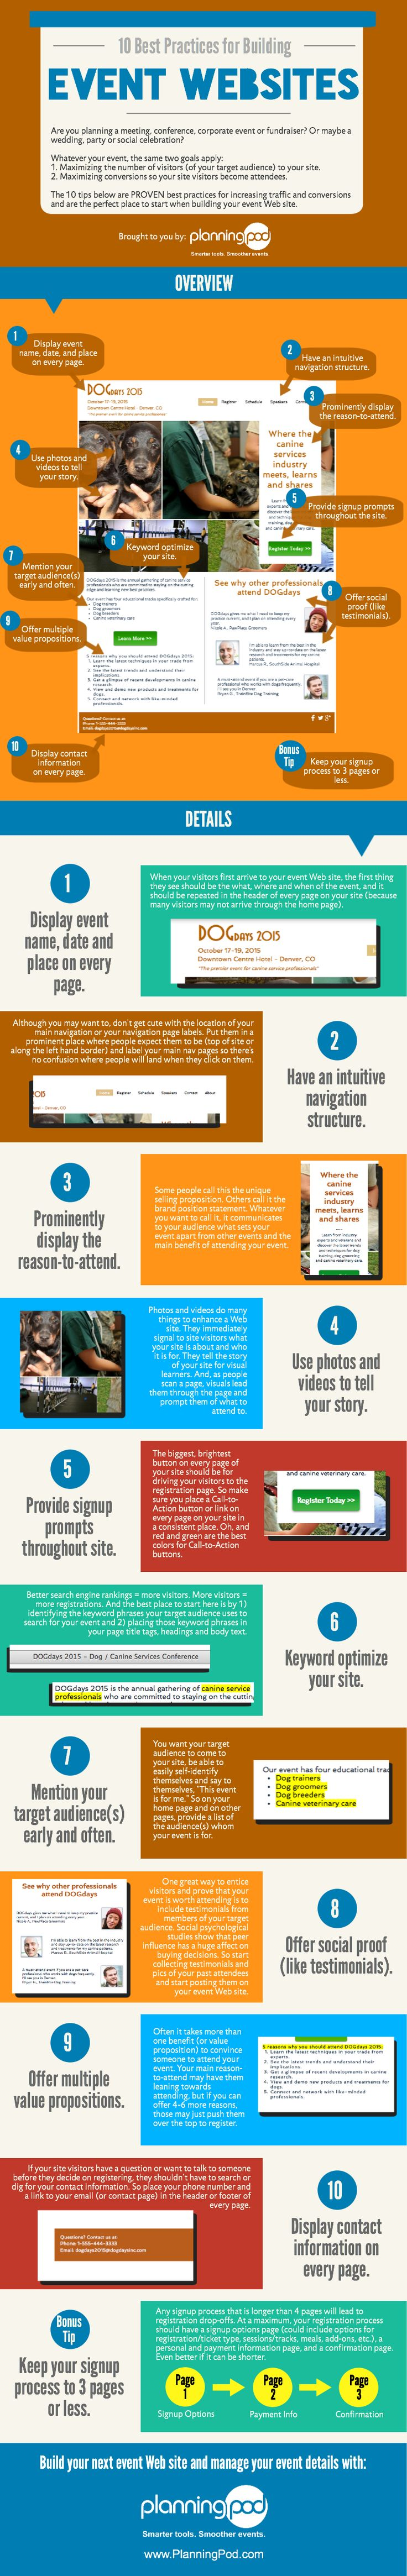 34 best images about Event Planning Blog Graphics on Pinterest